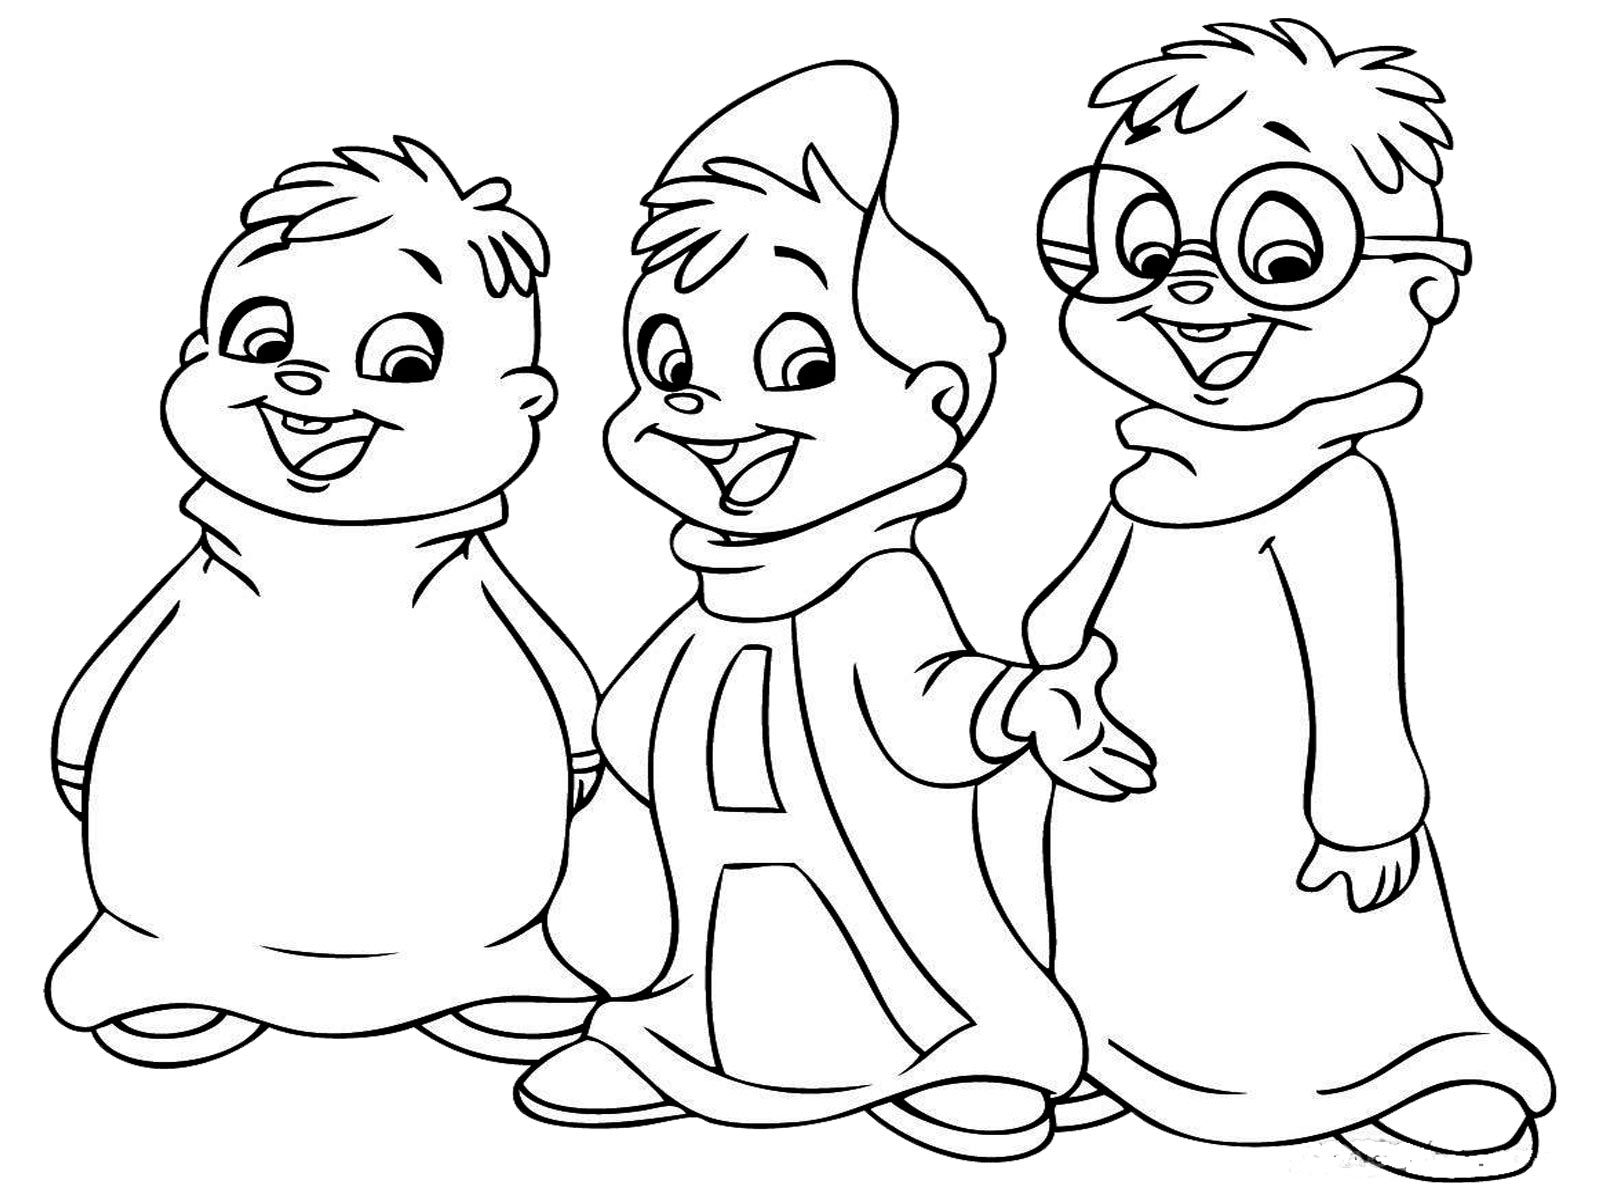 Uncategorized Children Coloring Sheets printable coloring pages for boys alvin and the chipmunks realistic pages